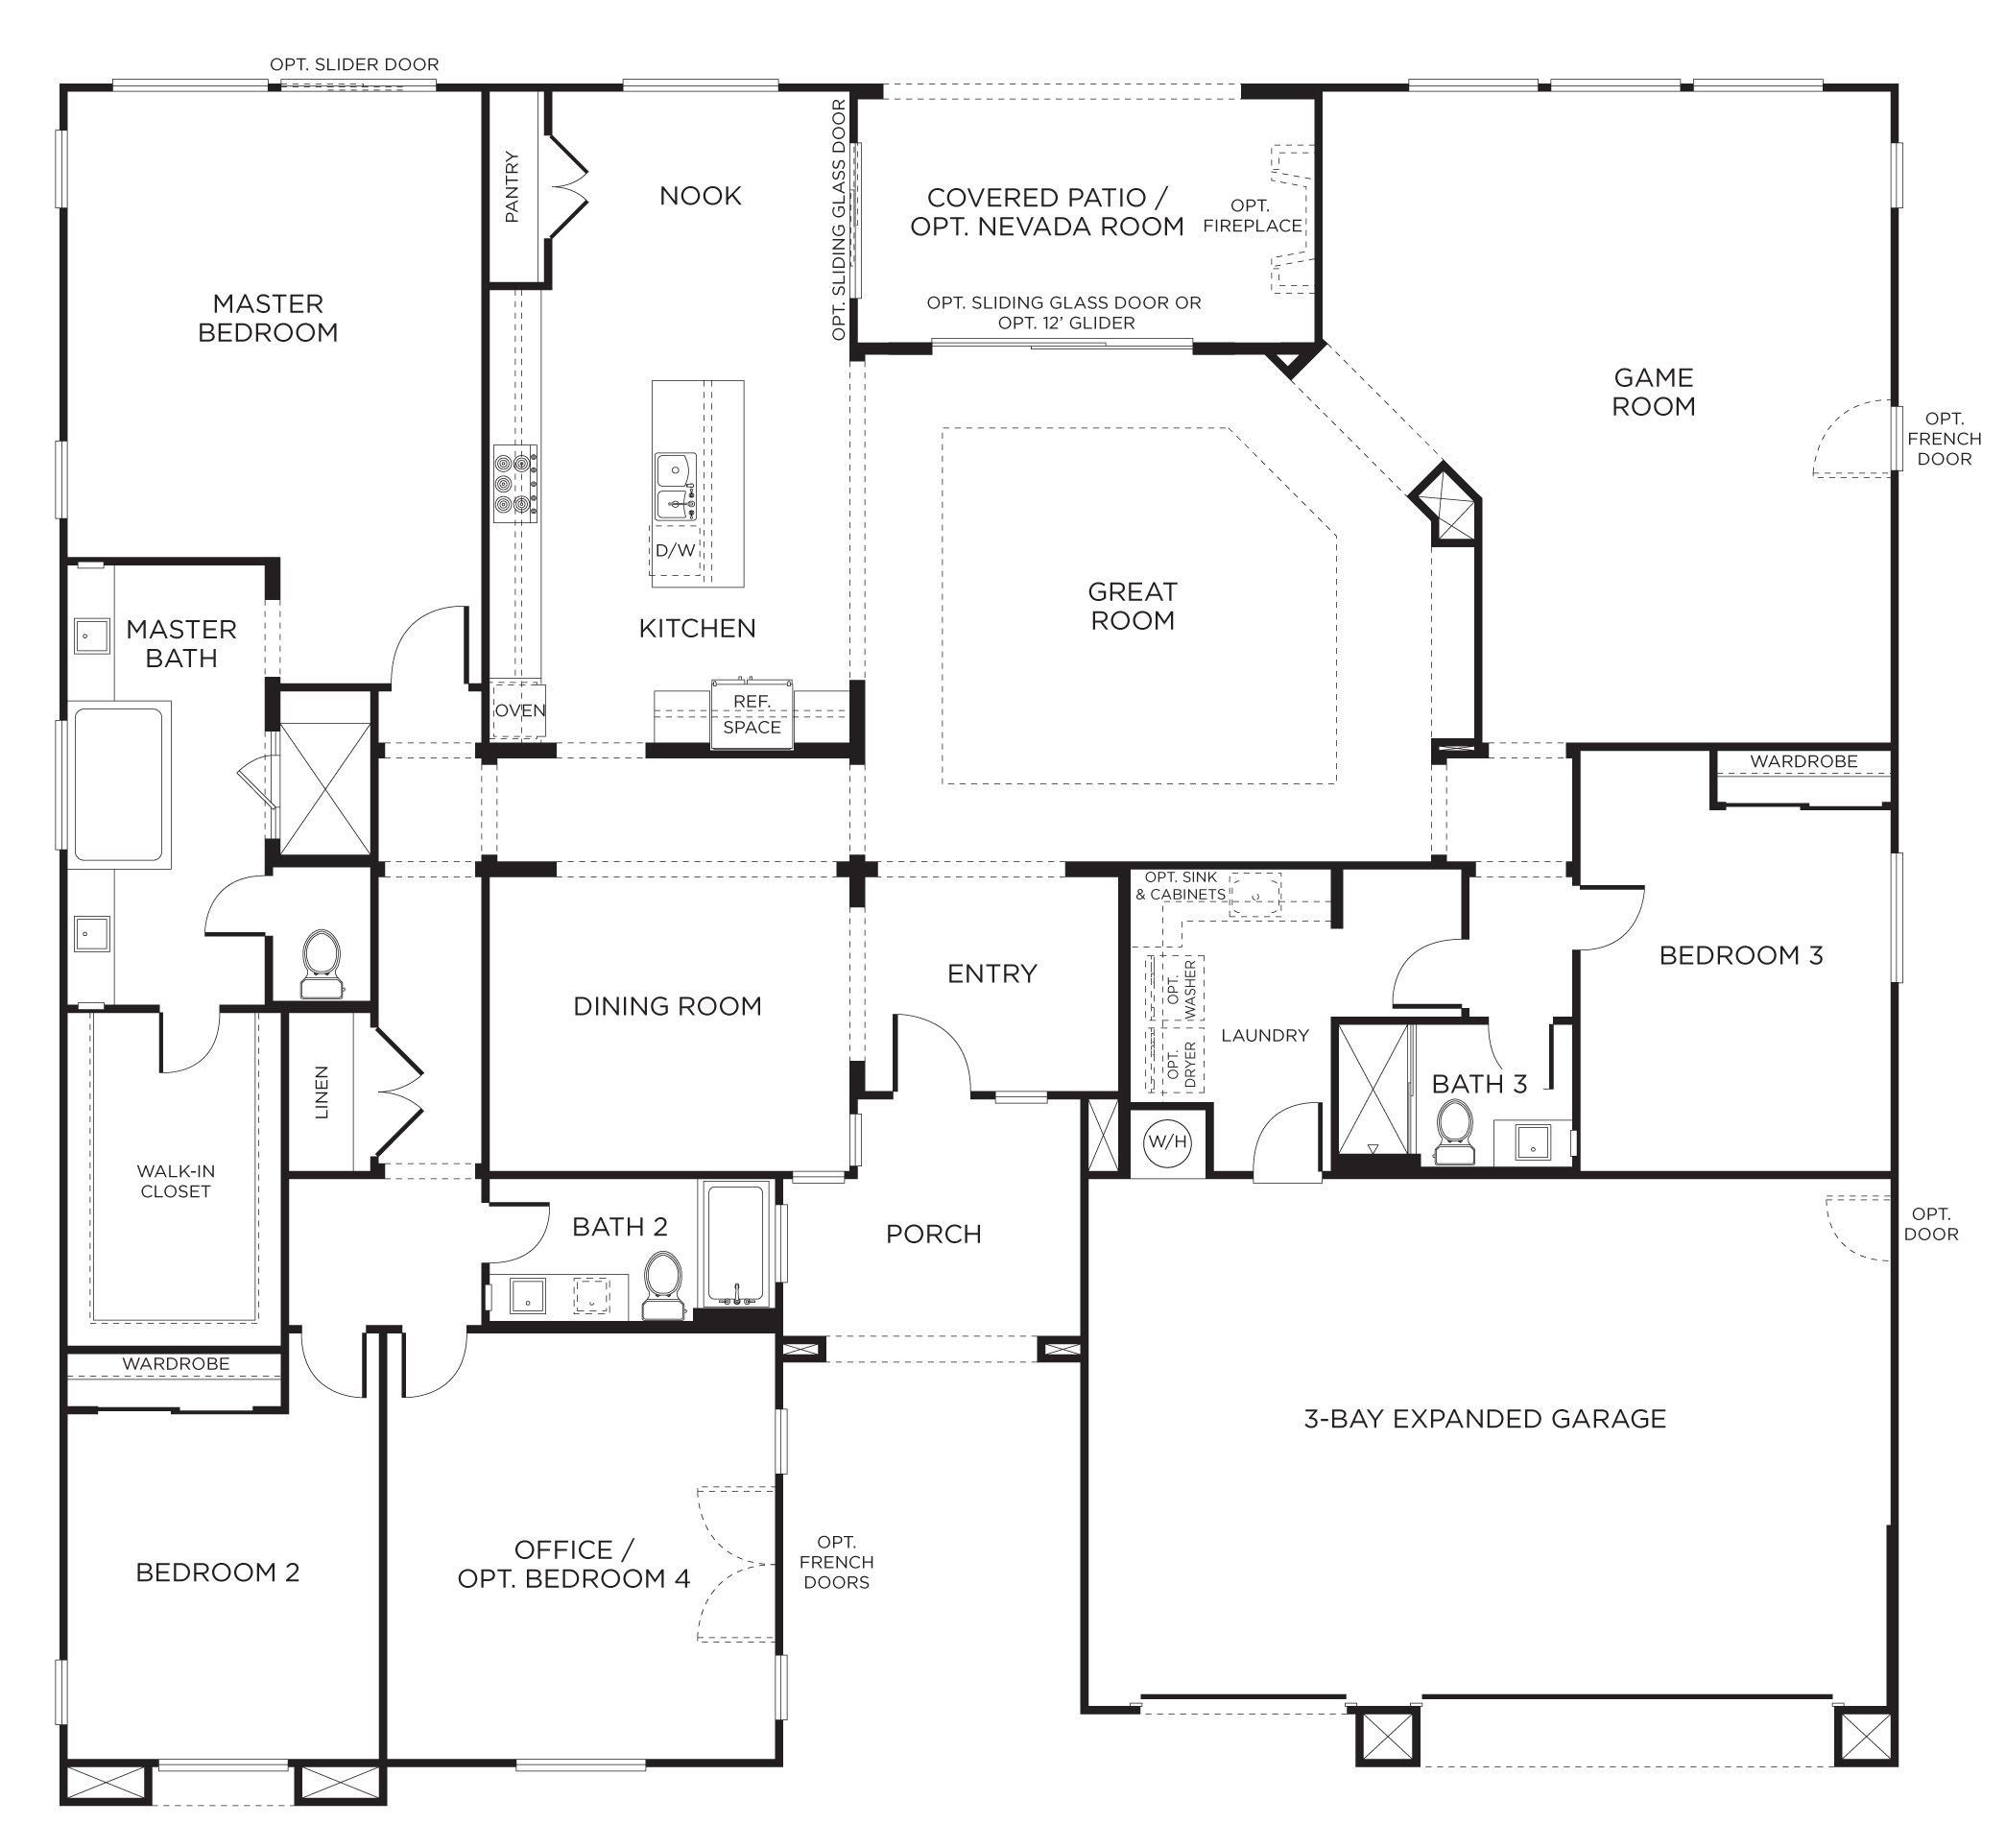 Floorplan 2 3 4 bedrooms 3 bathrooms 3400 square feet Single story floor plans with 3 car garage